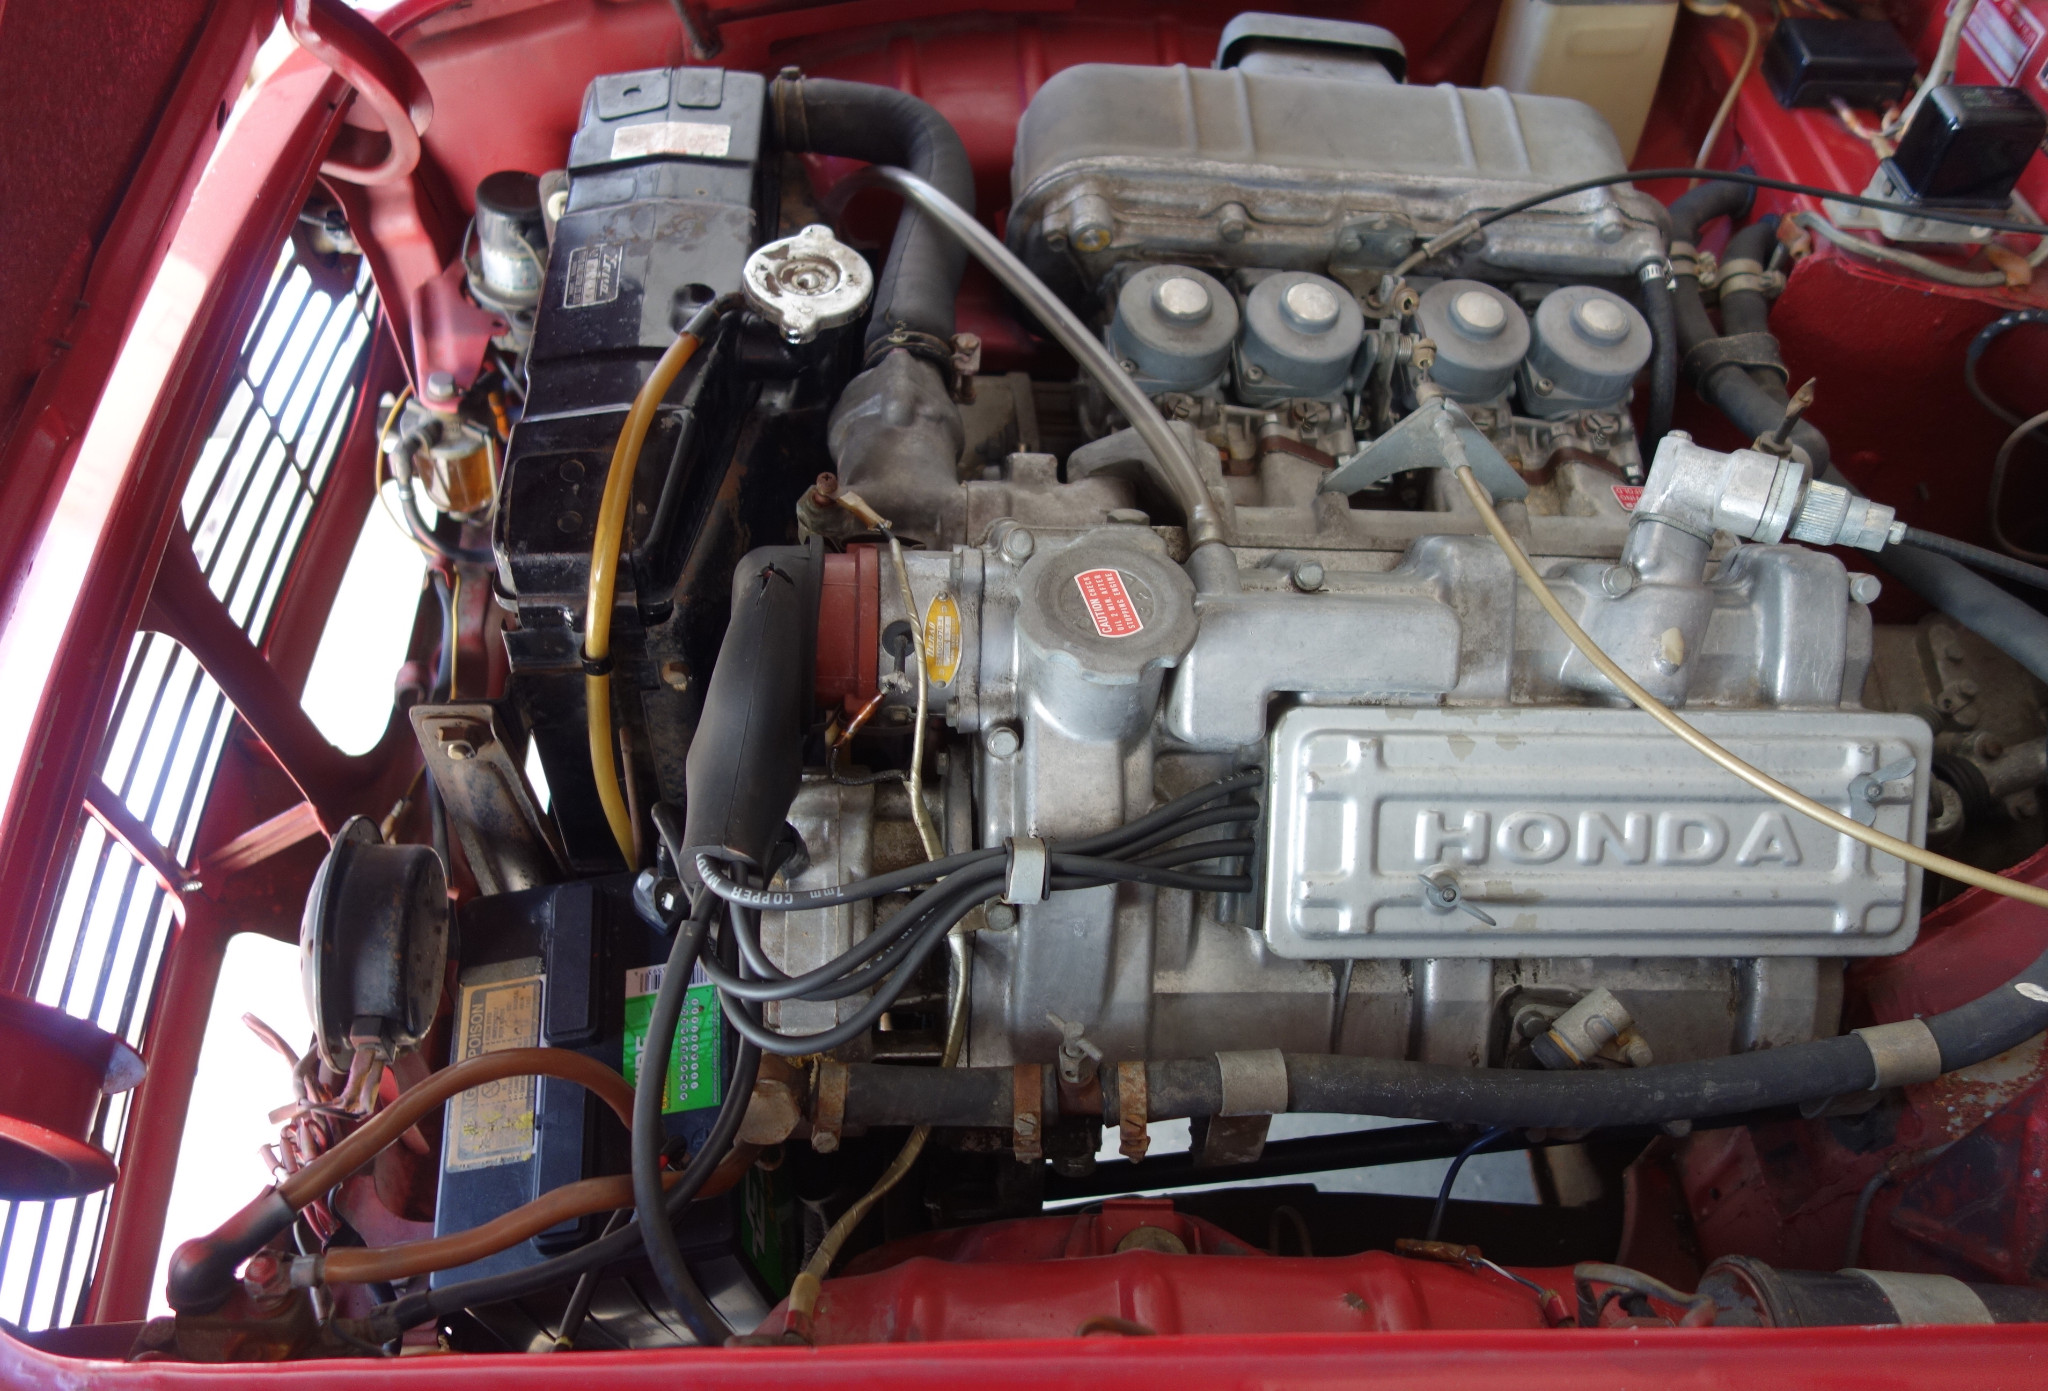 Opening the engine bay of the Honda S600 the first thing that strikes you are the four carburettors, one for each cylinder, similar to Honda sports motorcycles of the period.